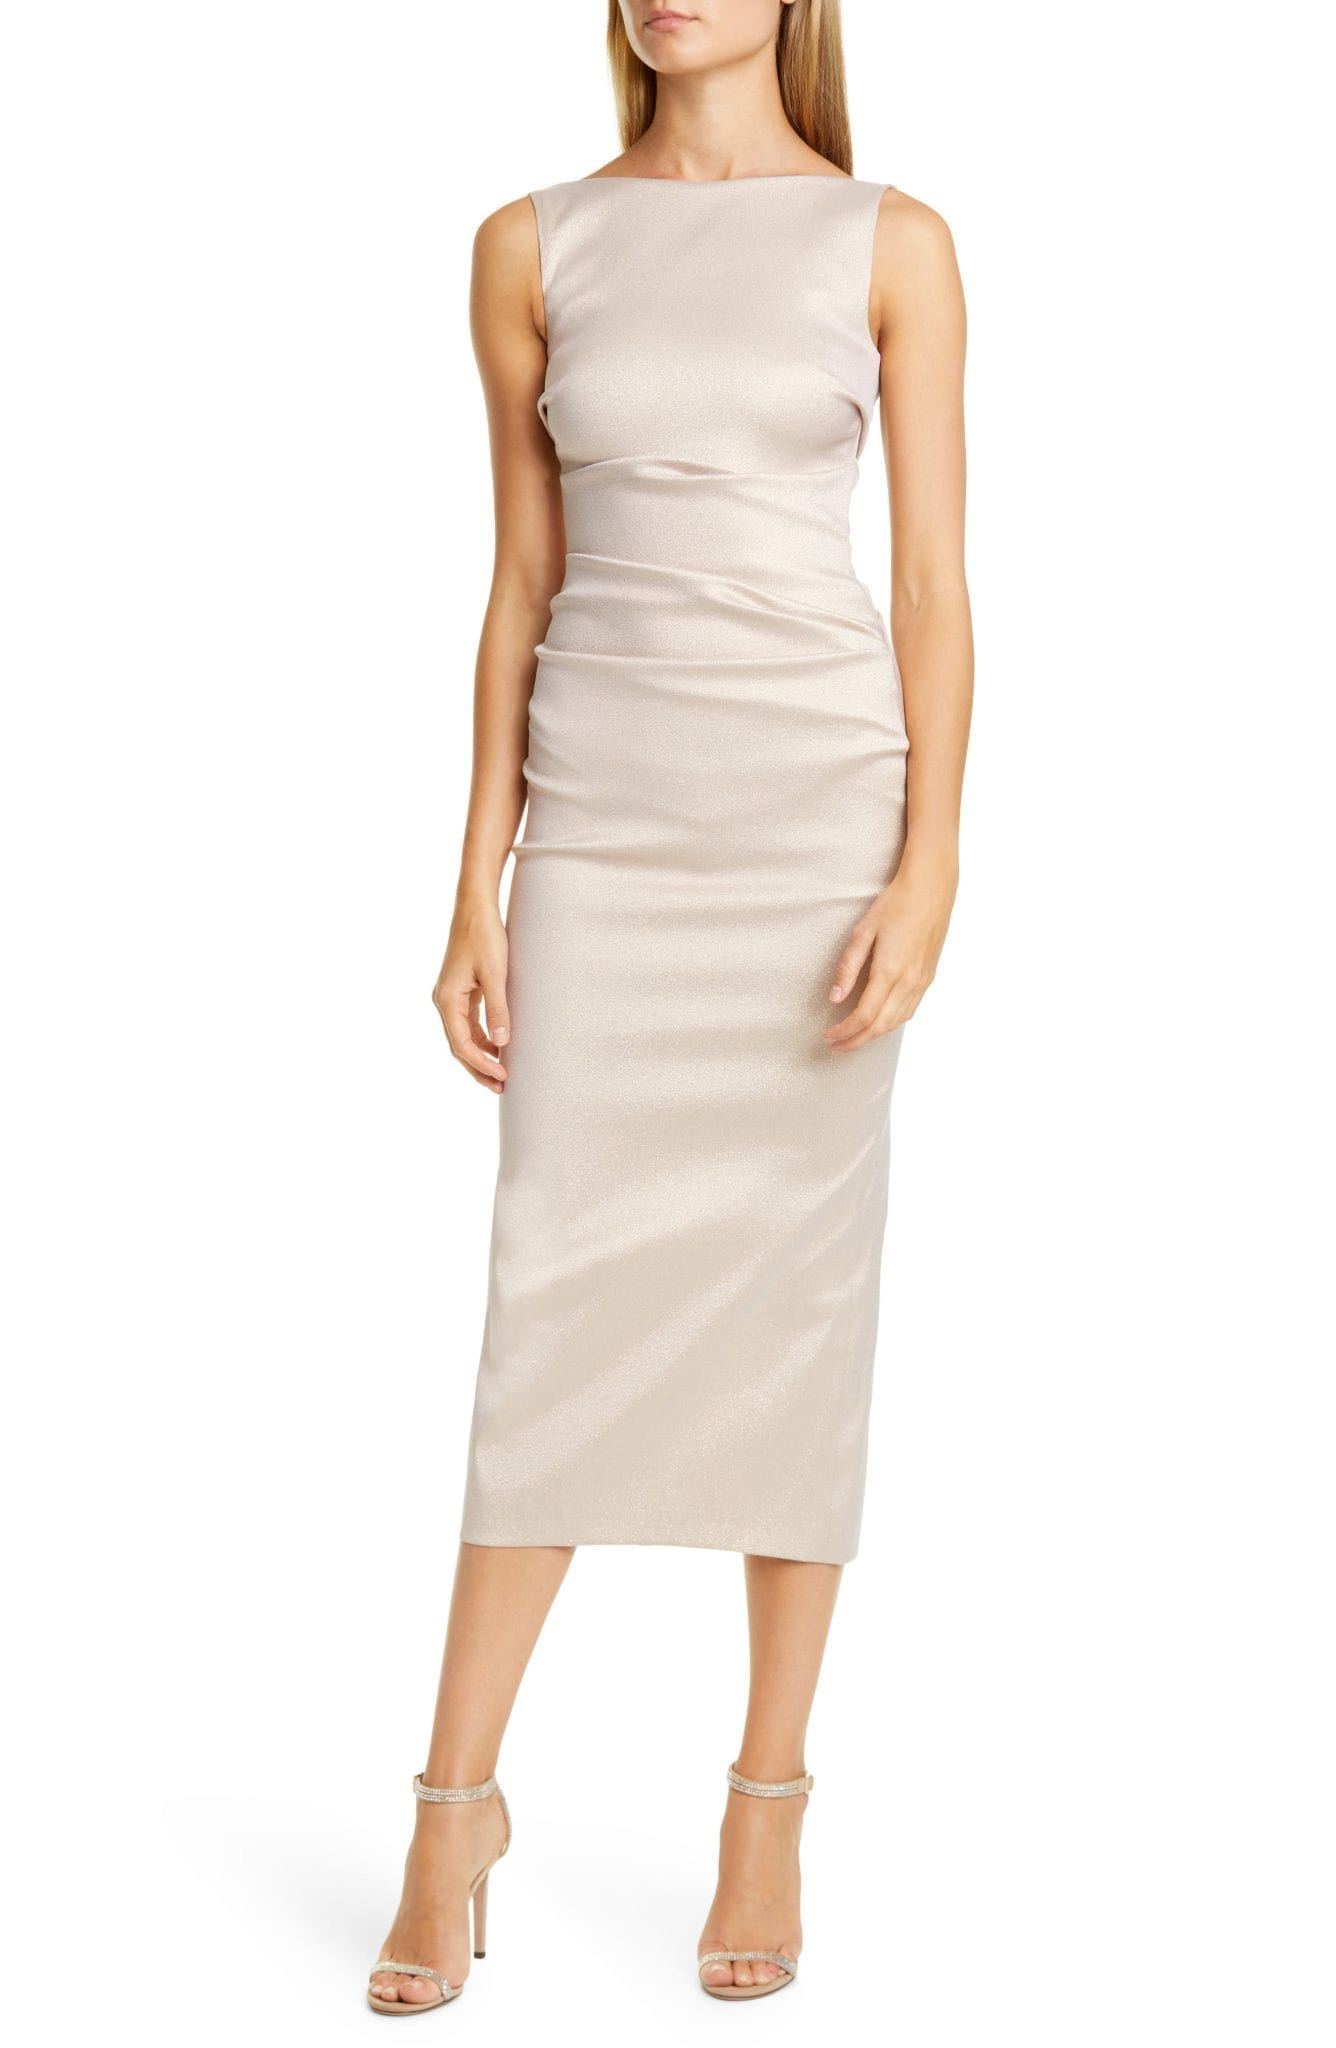 TALBOT RUNHOF Sorbet Gazar Midi Cocktail Dress